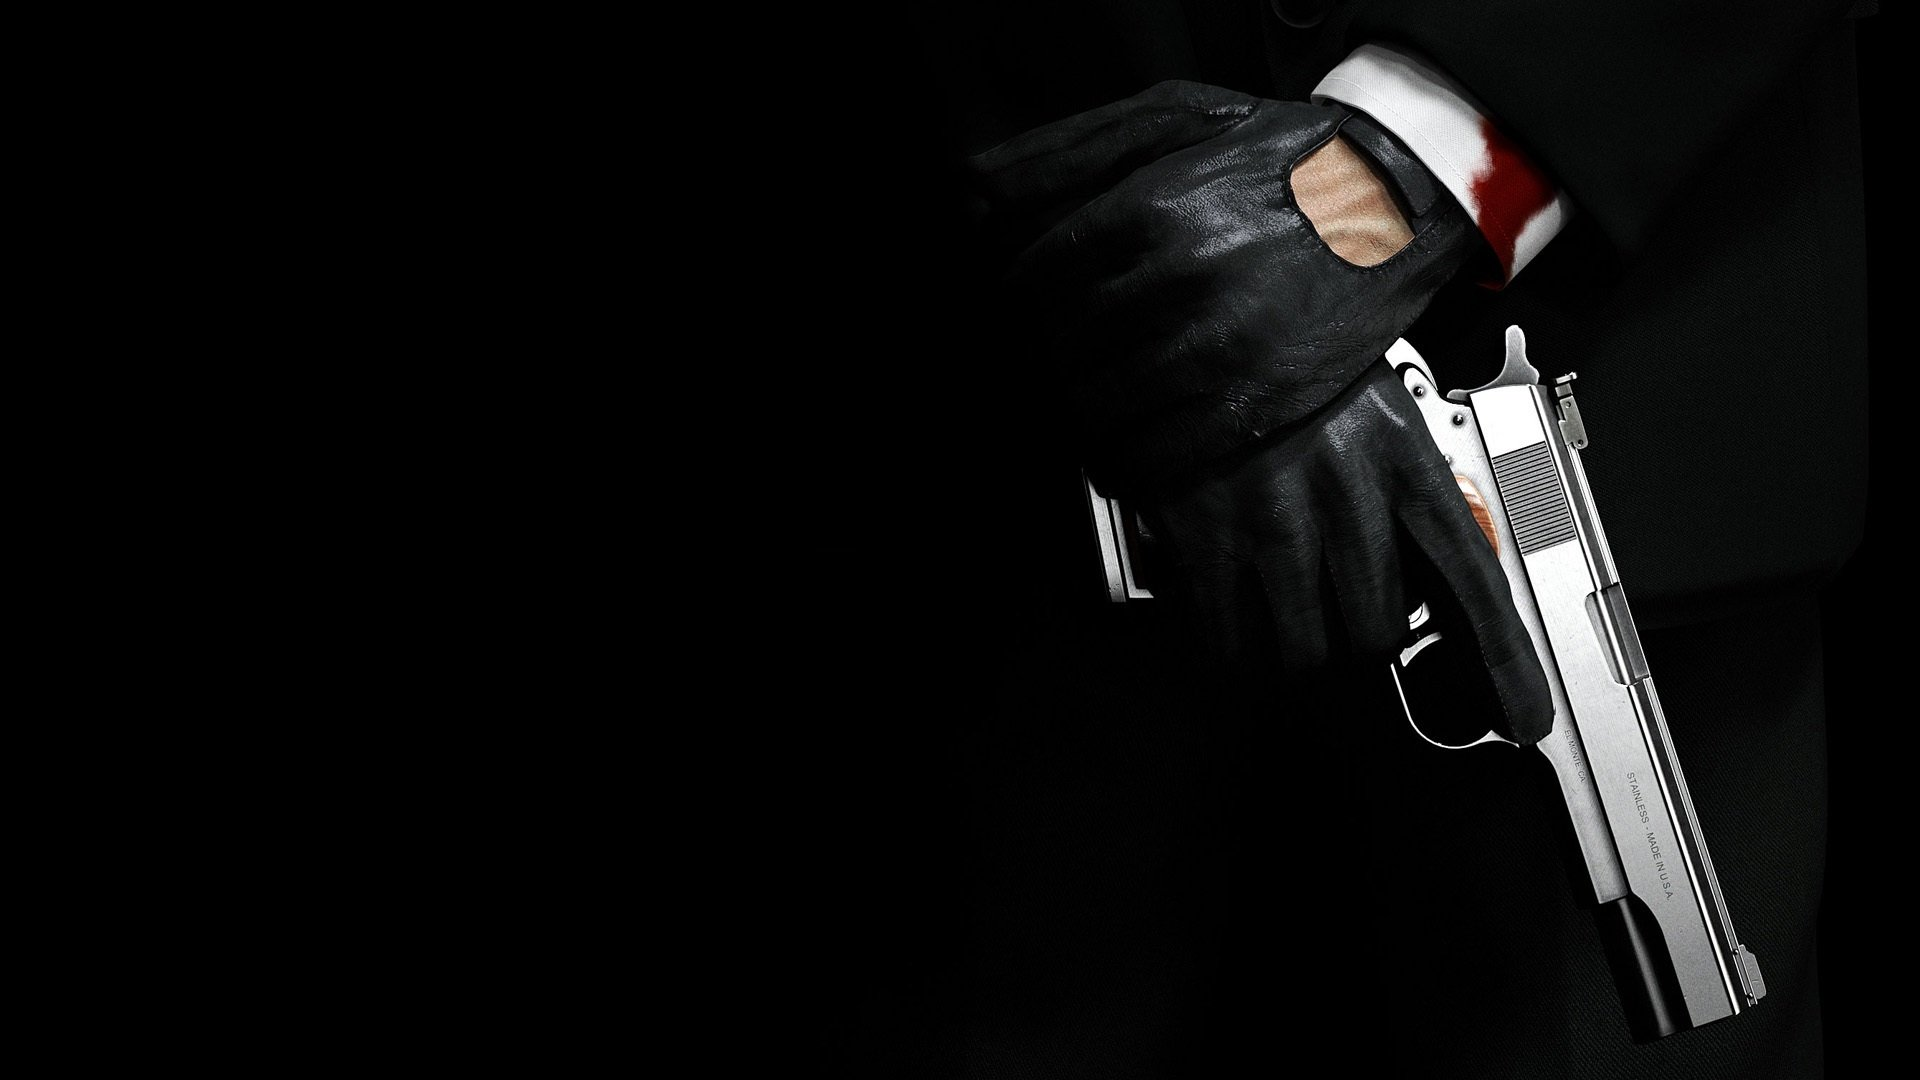 hitman wallpaper download